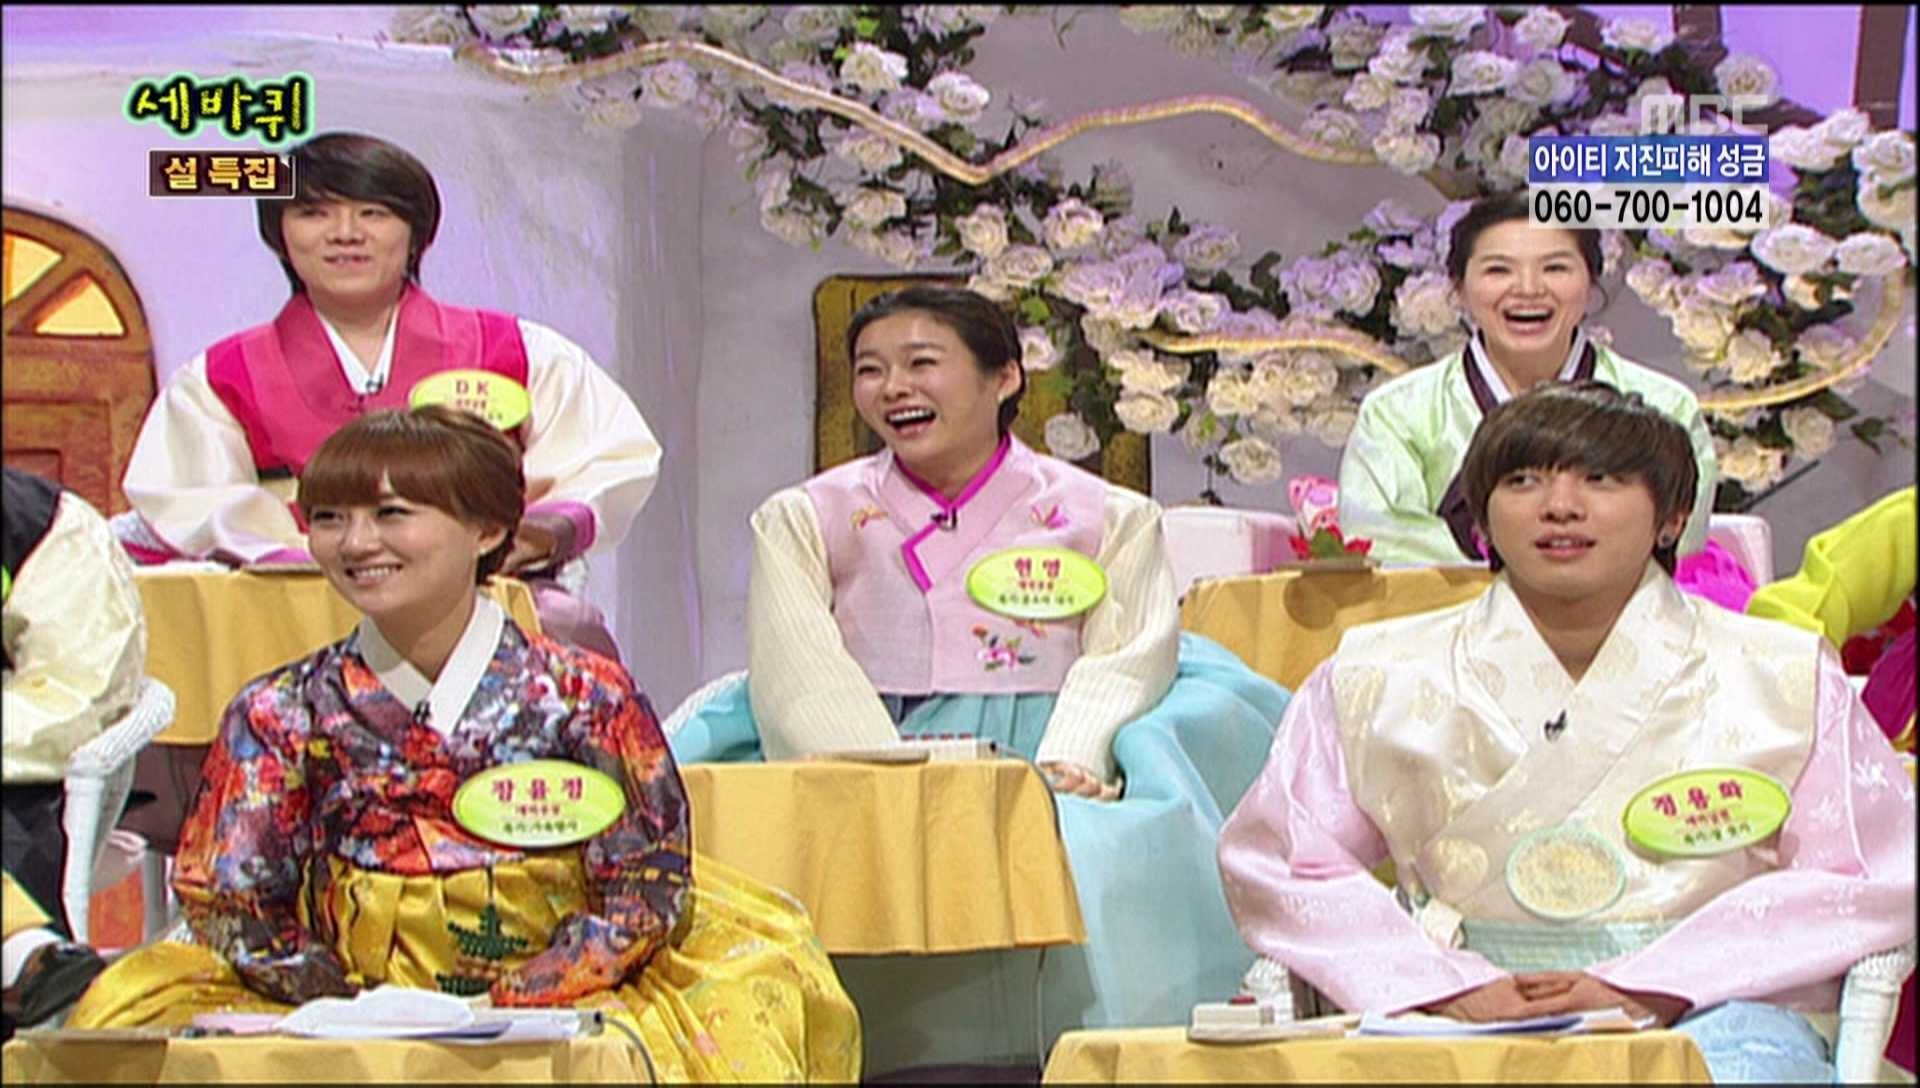 Funny monents from japanese TV shows.